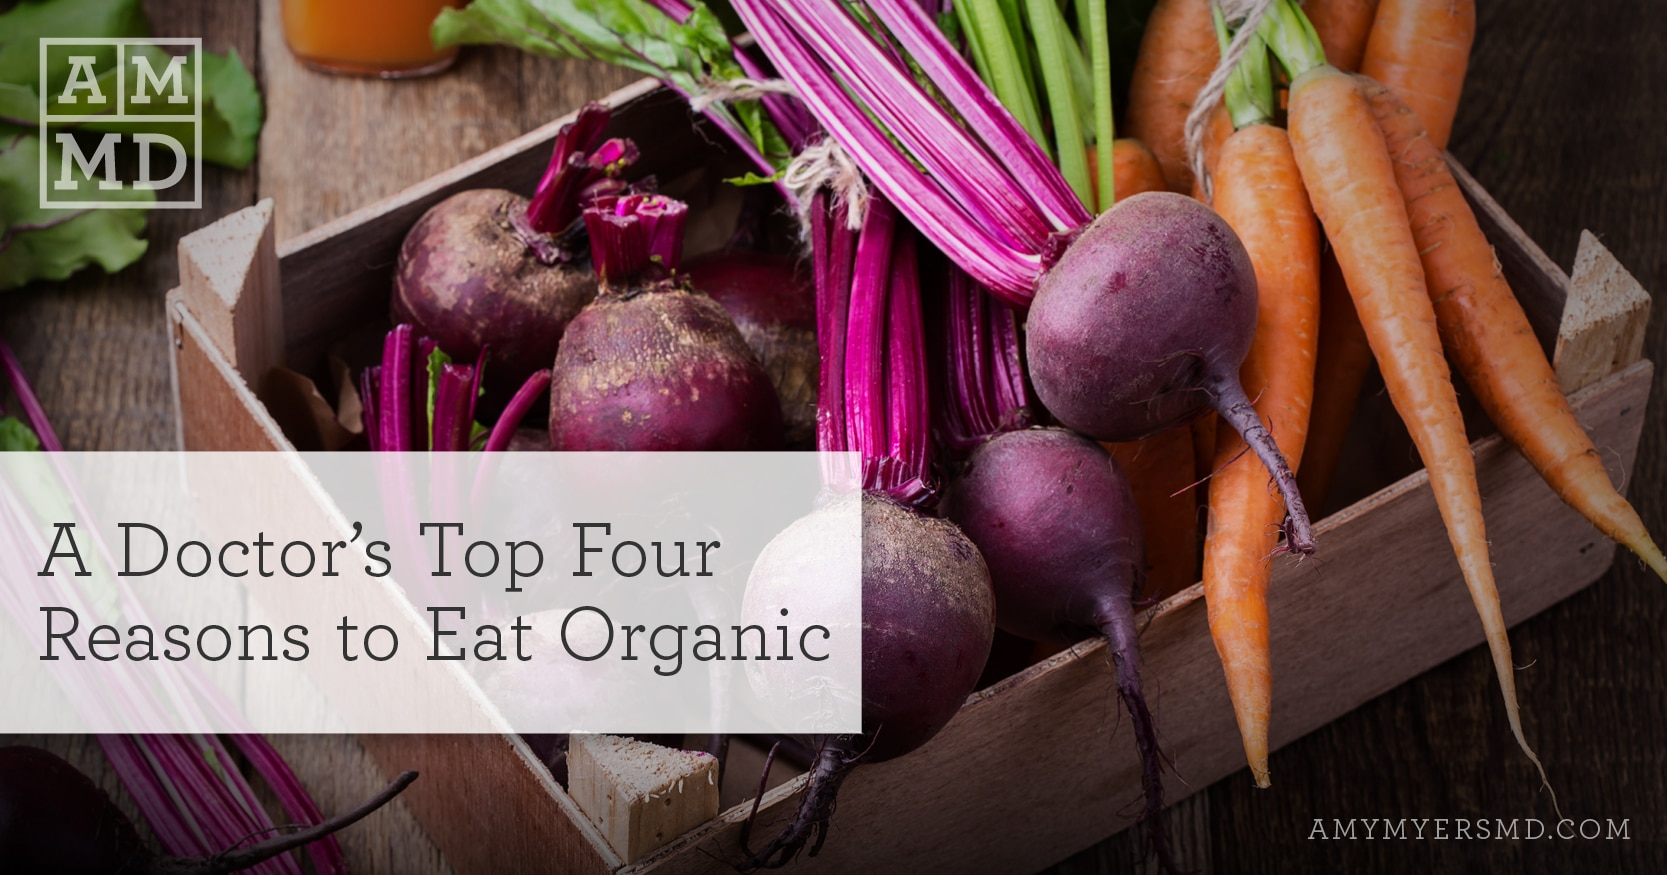 Top Four Reasons to Eat Organic